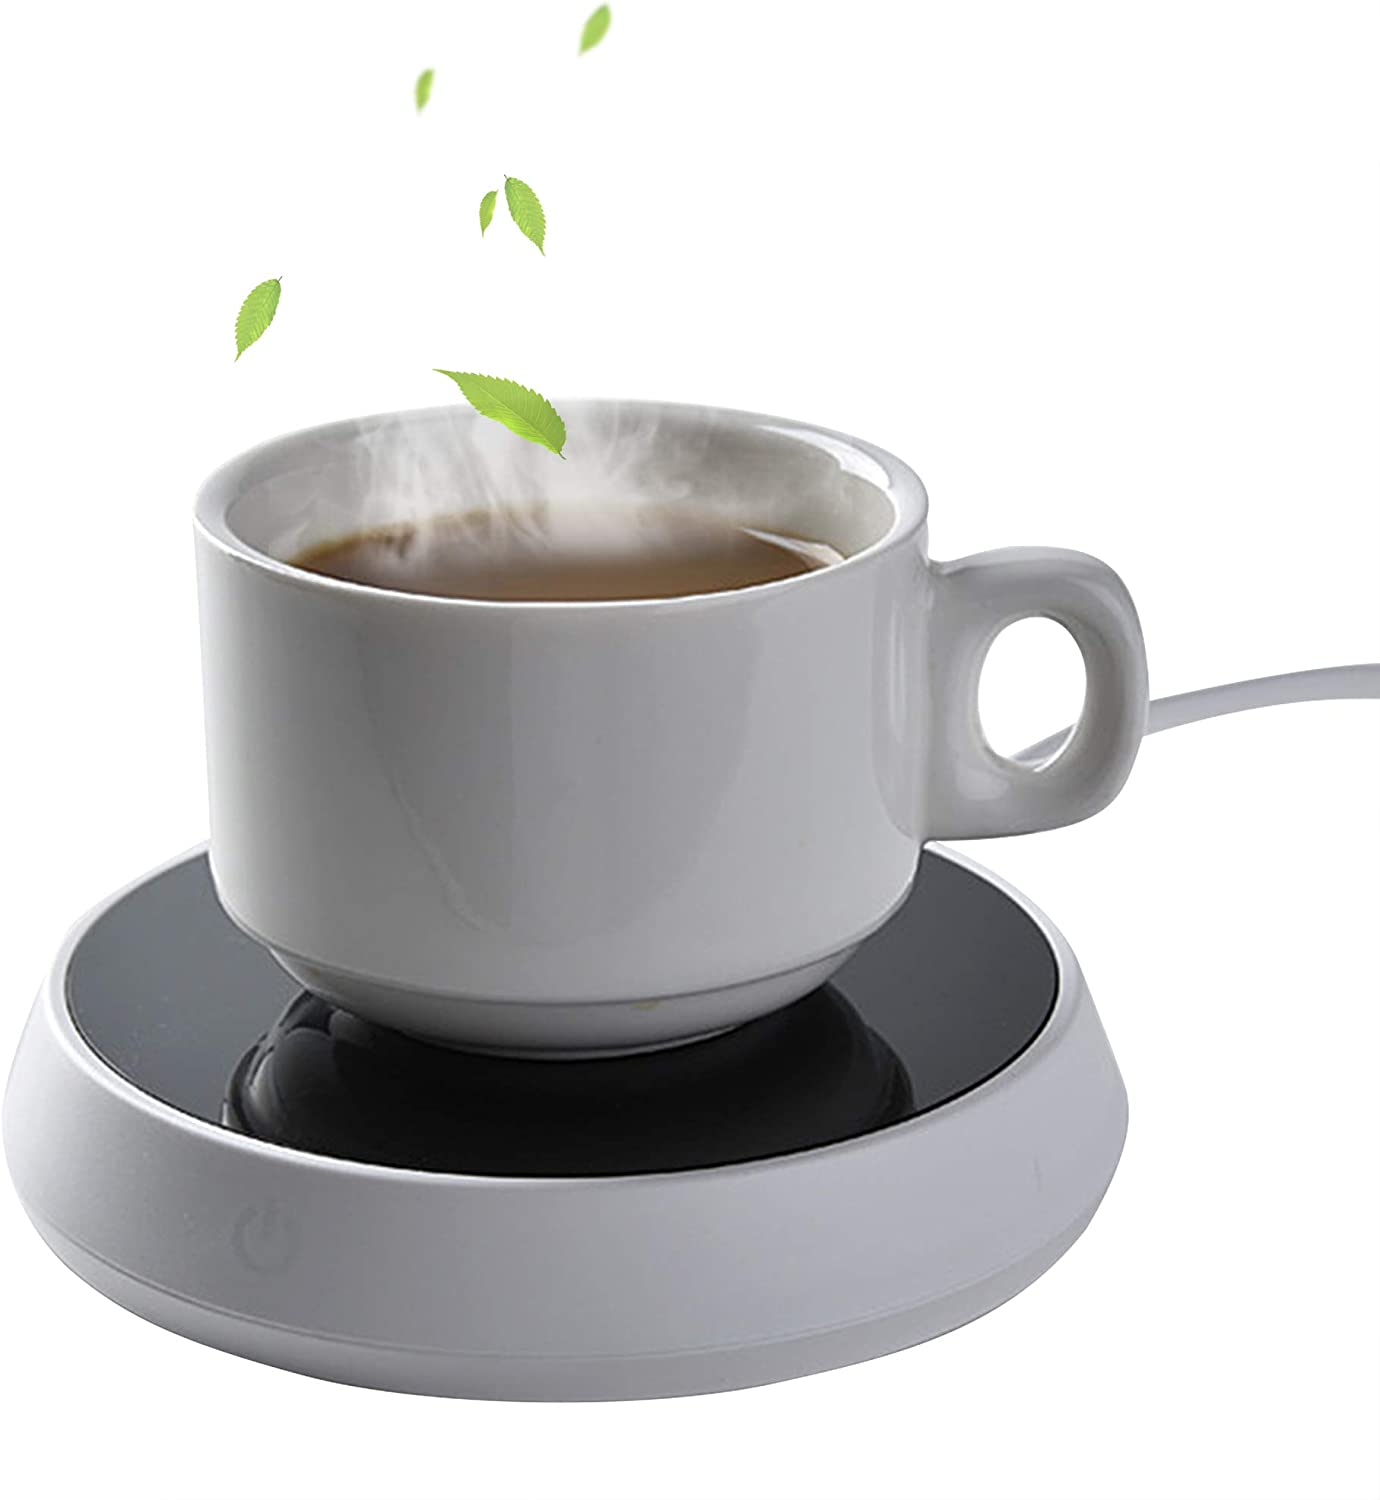 Mug Warmer for Tea,Coffee or Milk,Cup Beverage Warmer for Office, Home or Shop Use, Desktop Mug Warmer with Food Grade Silicone Drink Lids,55℃ Insulation Coaster with Reminder Light